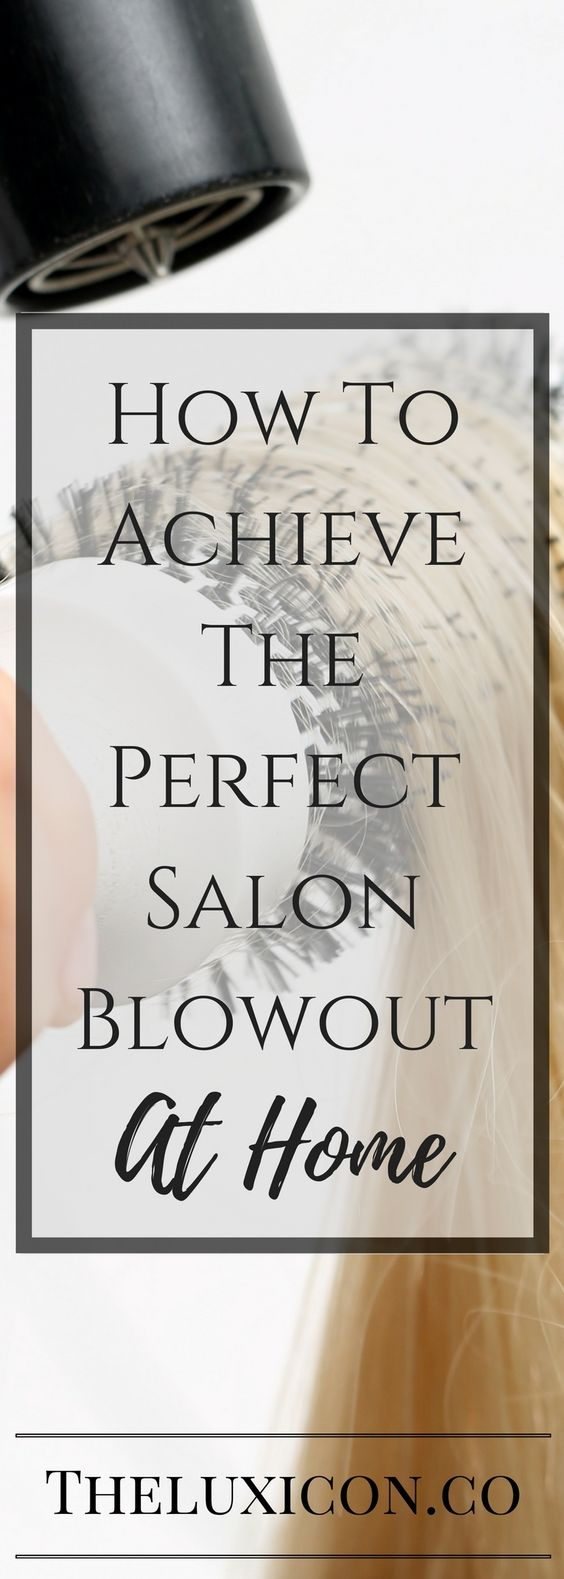 Professional Hair Blowout At Home: with just a few tips!